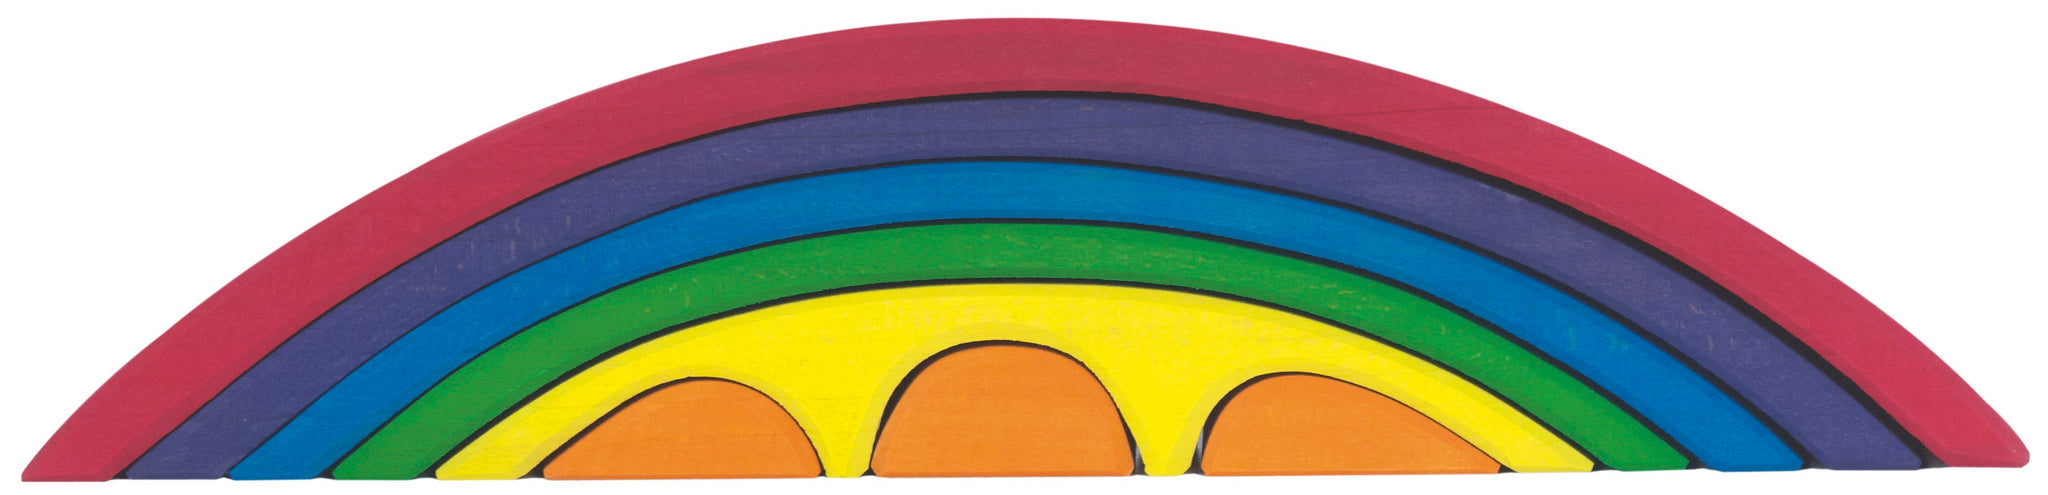 Gluckskafer Bridge Set - Rainbow - Smallkind